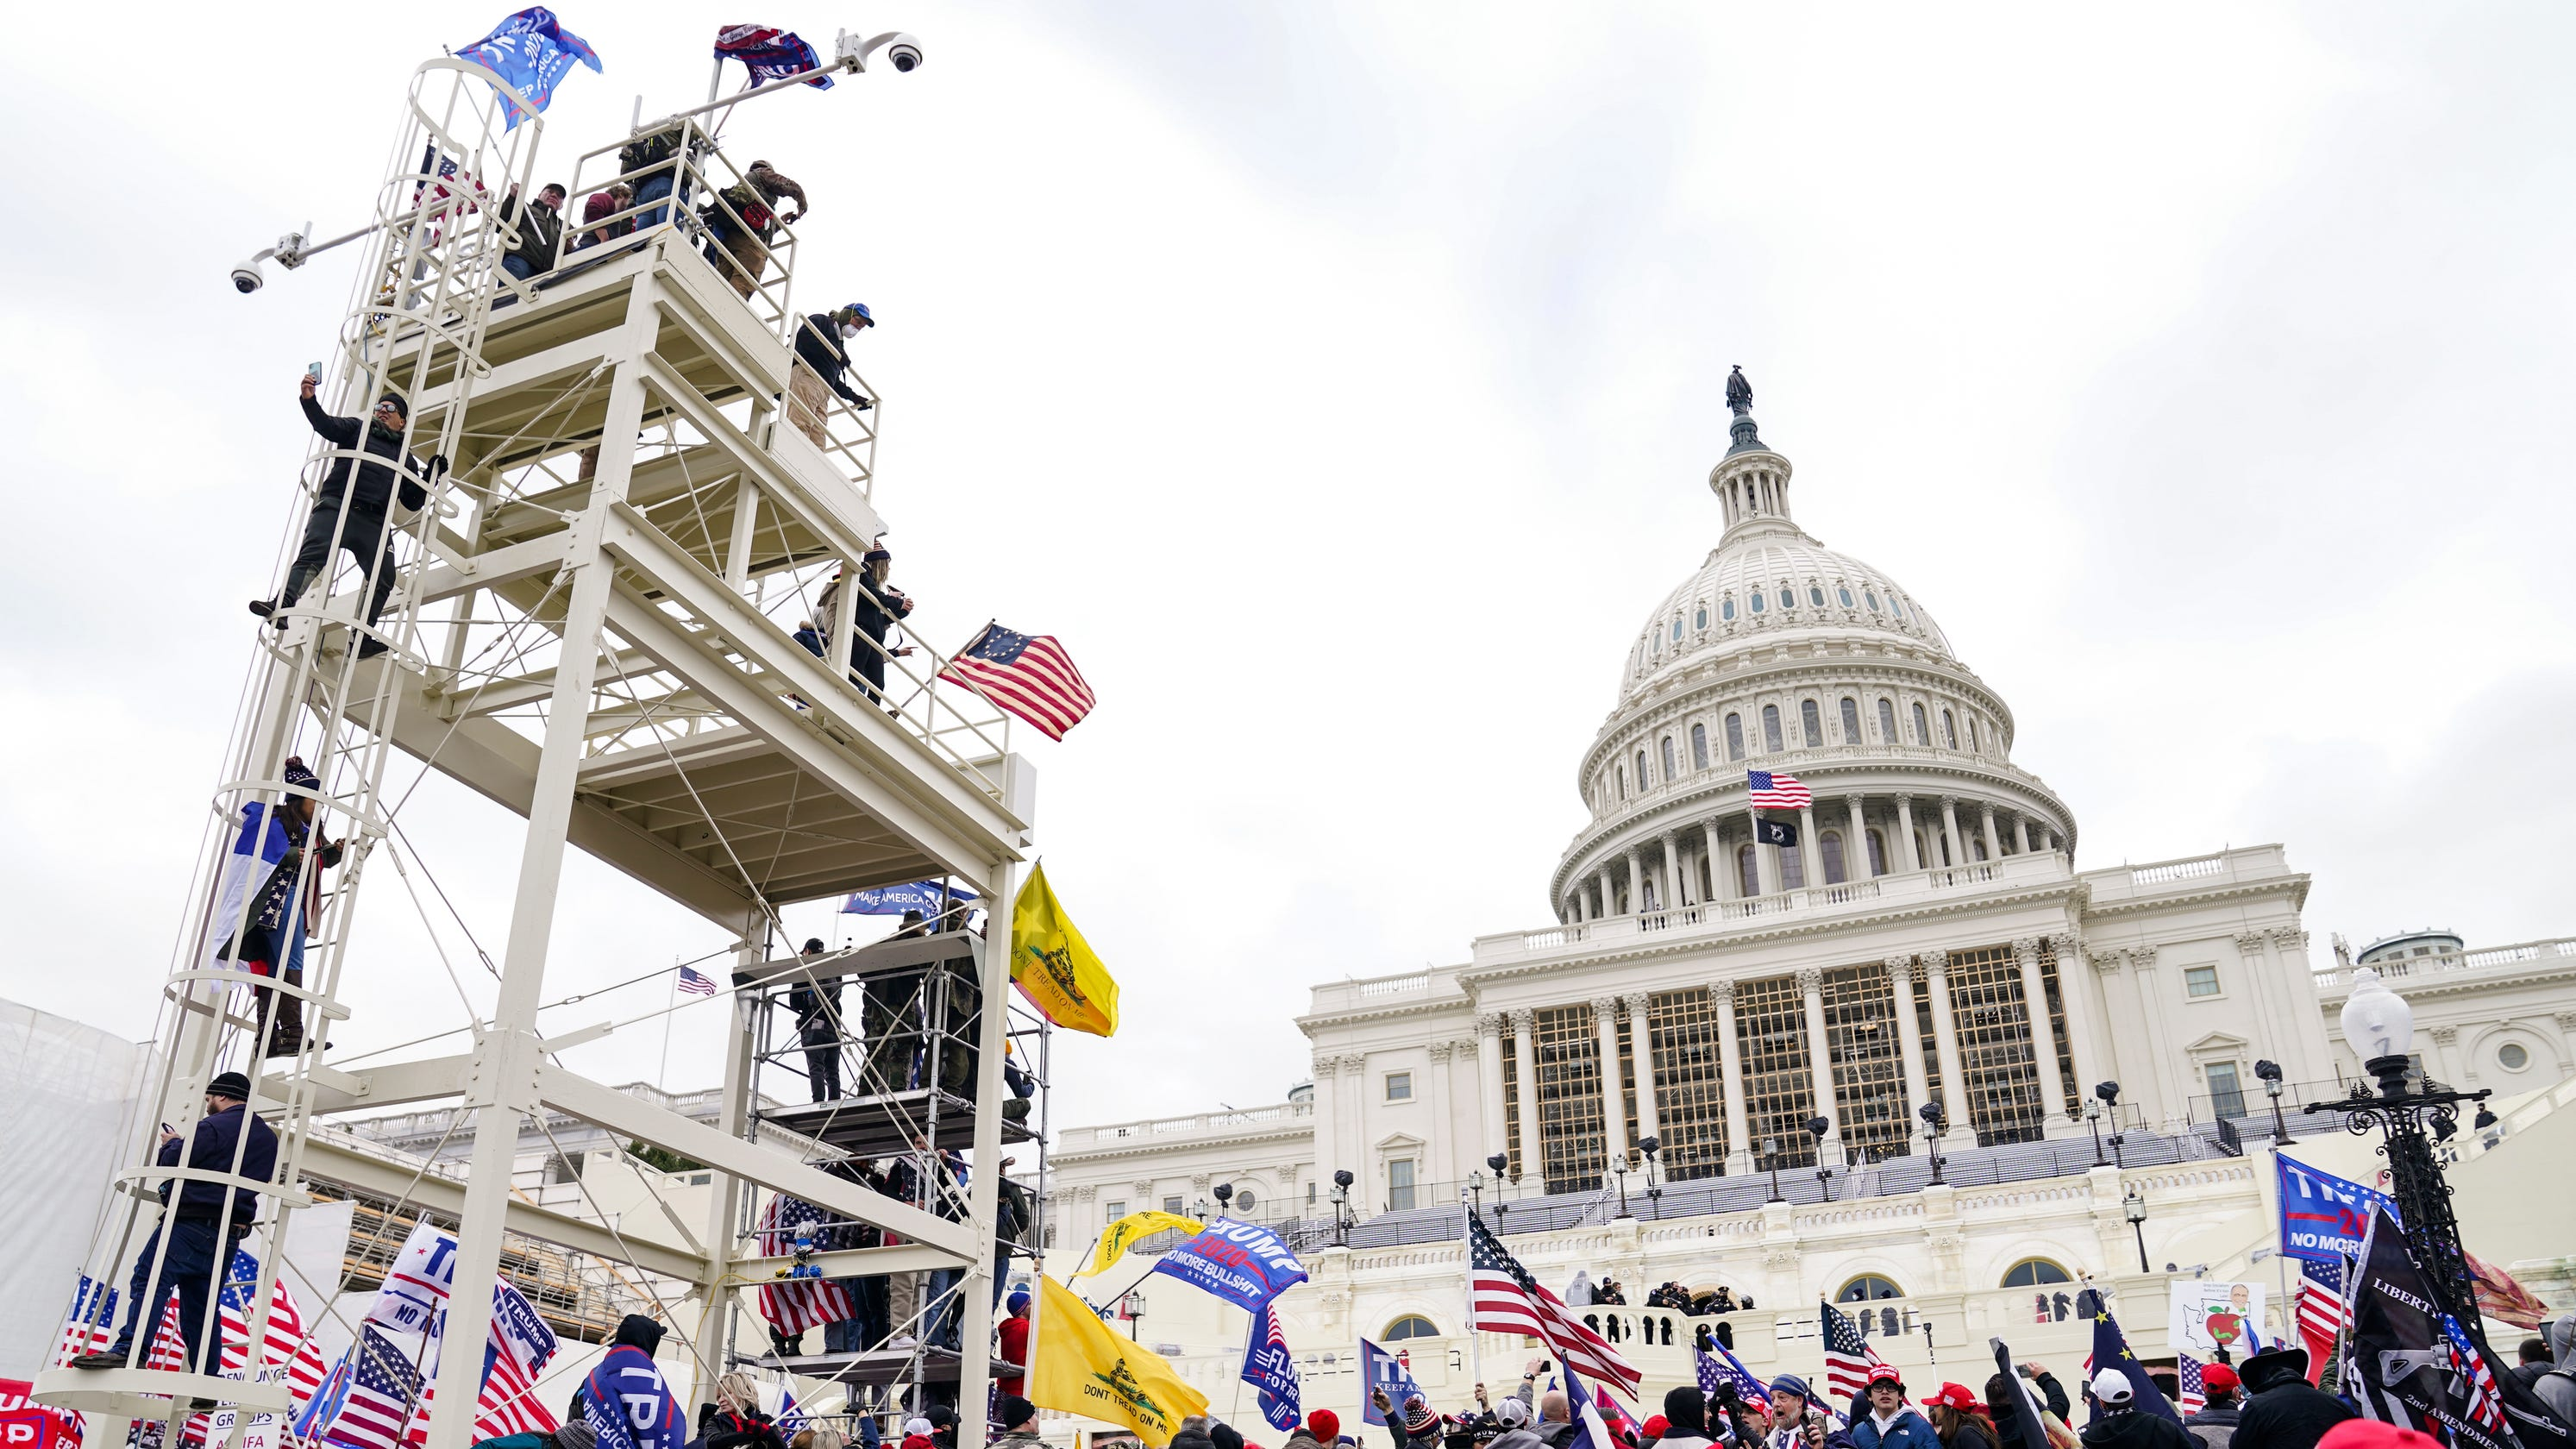 Capitol police watchdog says heavy, non-lethal munitions would've helped in Jan. 6 insurrection